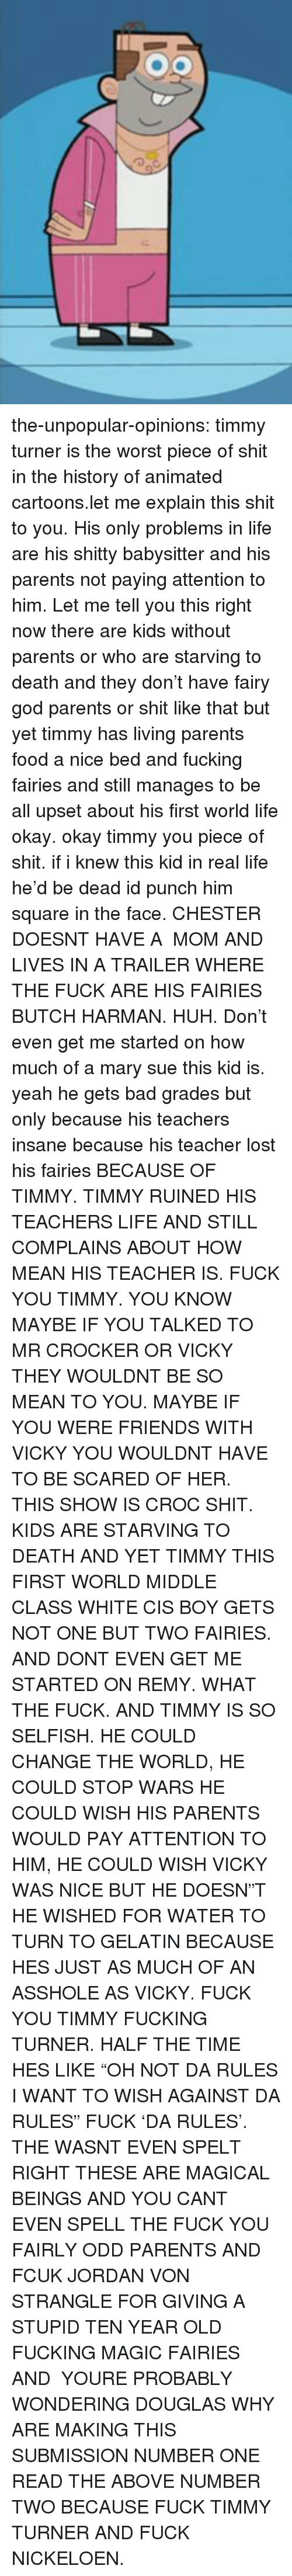 """gelatin: the-unpopular-opinions:  timmy turner is the worst piece of shit in the history of animated cartoons.let me explain this shit to you. His only problems in life are his shitty babysitter and his parents not paying attention to him. Let me tell you this right now there are kids without parents or who are starving to death and they don't have fairy god parents or shit like that but yet timmy has living parents food a nice bed and fucking fairies and still manages to be all upset about his first world life okay. okay timmy you piece of shit. if i knew this kid in real life he'd be dead id punch him square in the face. CHESTER DOESNT HAVE A MOM AND LIVES IN A TRAILER WHERE THE FUCK ARE HIS FAIRIES BUTCH HARMAN. HUH. Don't even get me started on how much of a mary sue this kid is. yeah he gets bad grades but only because his teachers insane because his teacher lost his fairies BECAUSE OF TIMMY. TIMMY RUINED HIS TEACHERS LIFE AND STILL COMPLAINS ABOUT HOW MEAN HIS TEACHER IS. FUCK YOU TIMMY. YOU KNOW MAYBE IF YOU TALKED TO MR CROCKER OR VICKY THEY WOULDNT BE SO MEAN TO YOU. MAYBE IF YOU WERE FRIENDS WITH VICKY YOU WOULDNT HAVE TO BE SCARED OF HER. THIS SHOW IS CROC SHIT. KIDS ARE STARVING TO DEATH AND YET TIMMY THIS FIRST WORLD MIDDLE CLASS WHITE CIS BOY GETS NOT ONE BUT TWO FAIRIES. AND DONT EVEN GET ME STARTED ON REMY. WHAT THE FUCK. AND TIMMY IS SO SELFISH. HE COULD CHANGE THE WORLD, HE COULD STOP WARS HE COULD WISH HIS PARENTS WOULD PAY ATTENTION TO HIM, HE COULD WISH VICKY WAS NICE BUT HE DOESN""""T HE WISHED FOR WATER TO TURN TO GELATIN BECAUSE HES JUST AS MUCH OF AN ASSHOLE AS VICKY. FUCK YOU TIMMY FUCKING TURNER. HALF THE TIME HES LIKE """"OH NOT DA RULES I WANT TO WISH AGAINST DA RULES"""" FUCK 'DA RULES'. THE WASNT EVEN SPELT RIGHT THESE ARE MAGICAL BEINGS AND YOU CANT EVEN SPELL THE FUCK YOU FAIRLY ODD PARENTS AND FCUK JORDAN VON STRANGLE FOR GIVING A STUPID TEN YEAR OLD FUCKING MAGIC FAIRIES AND YOURE PROBABLY WONDERING DOUGLAS WHY ARE MAKING THIS SUBMISSION NU"""